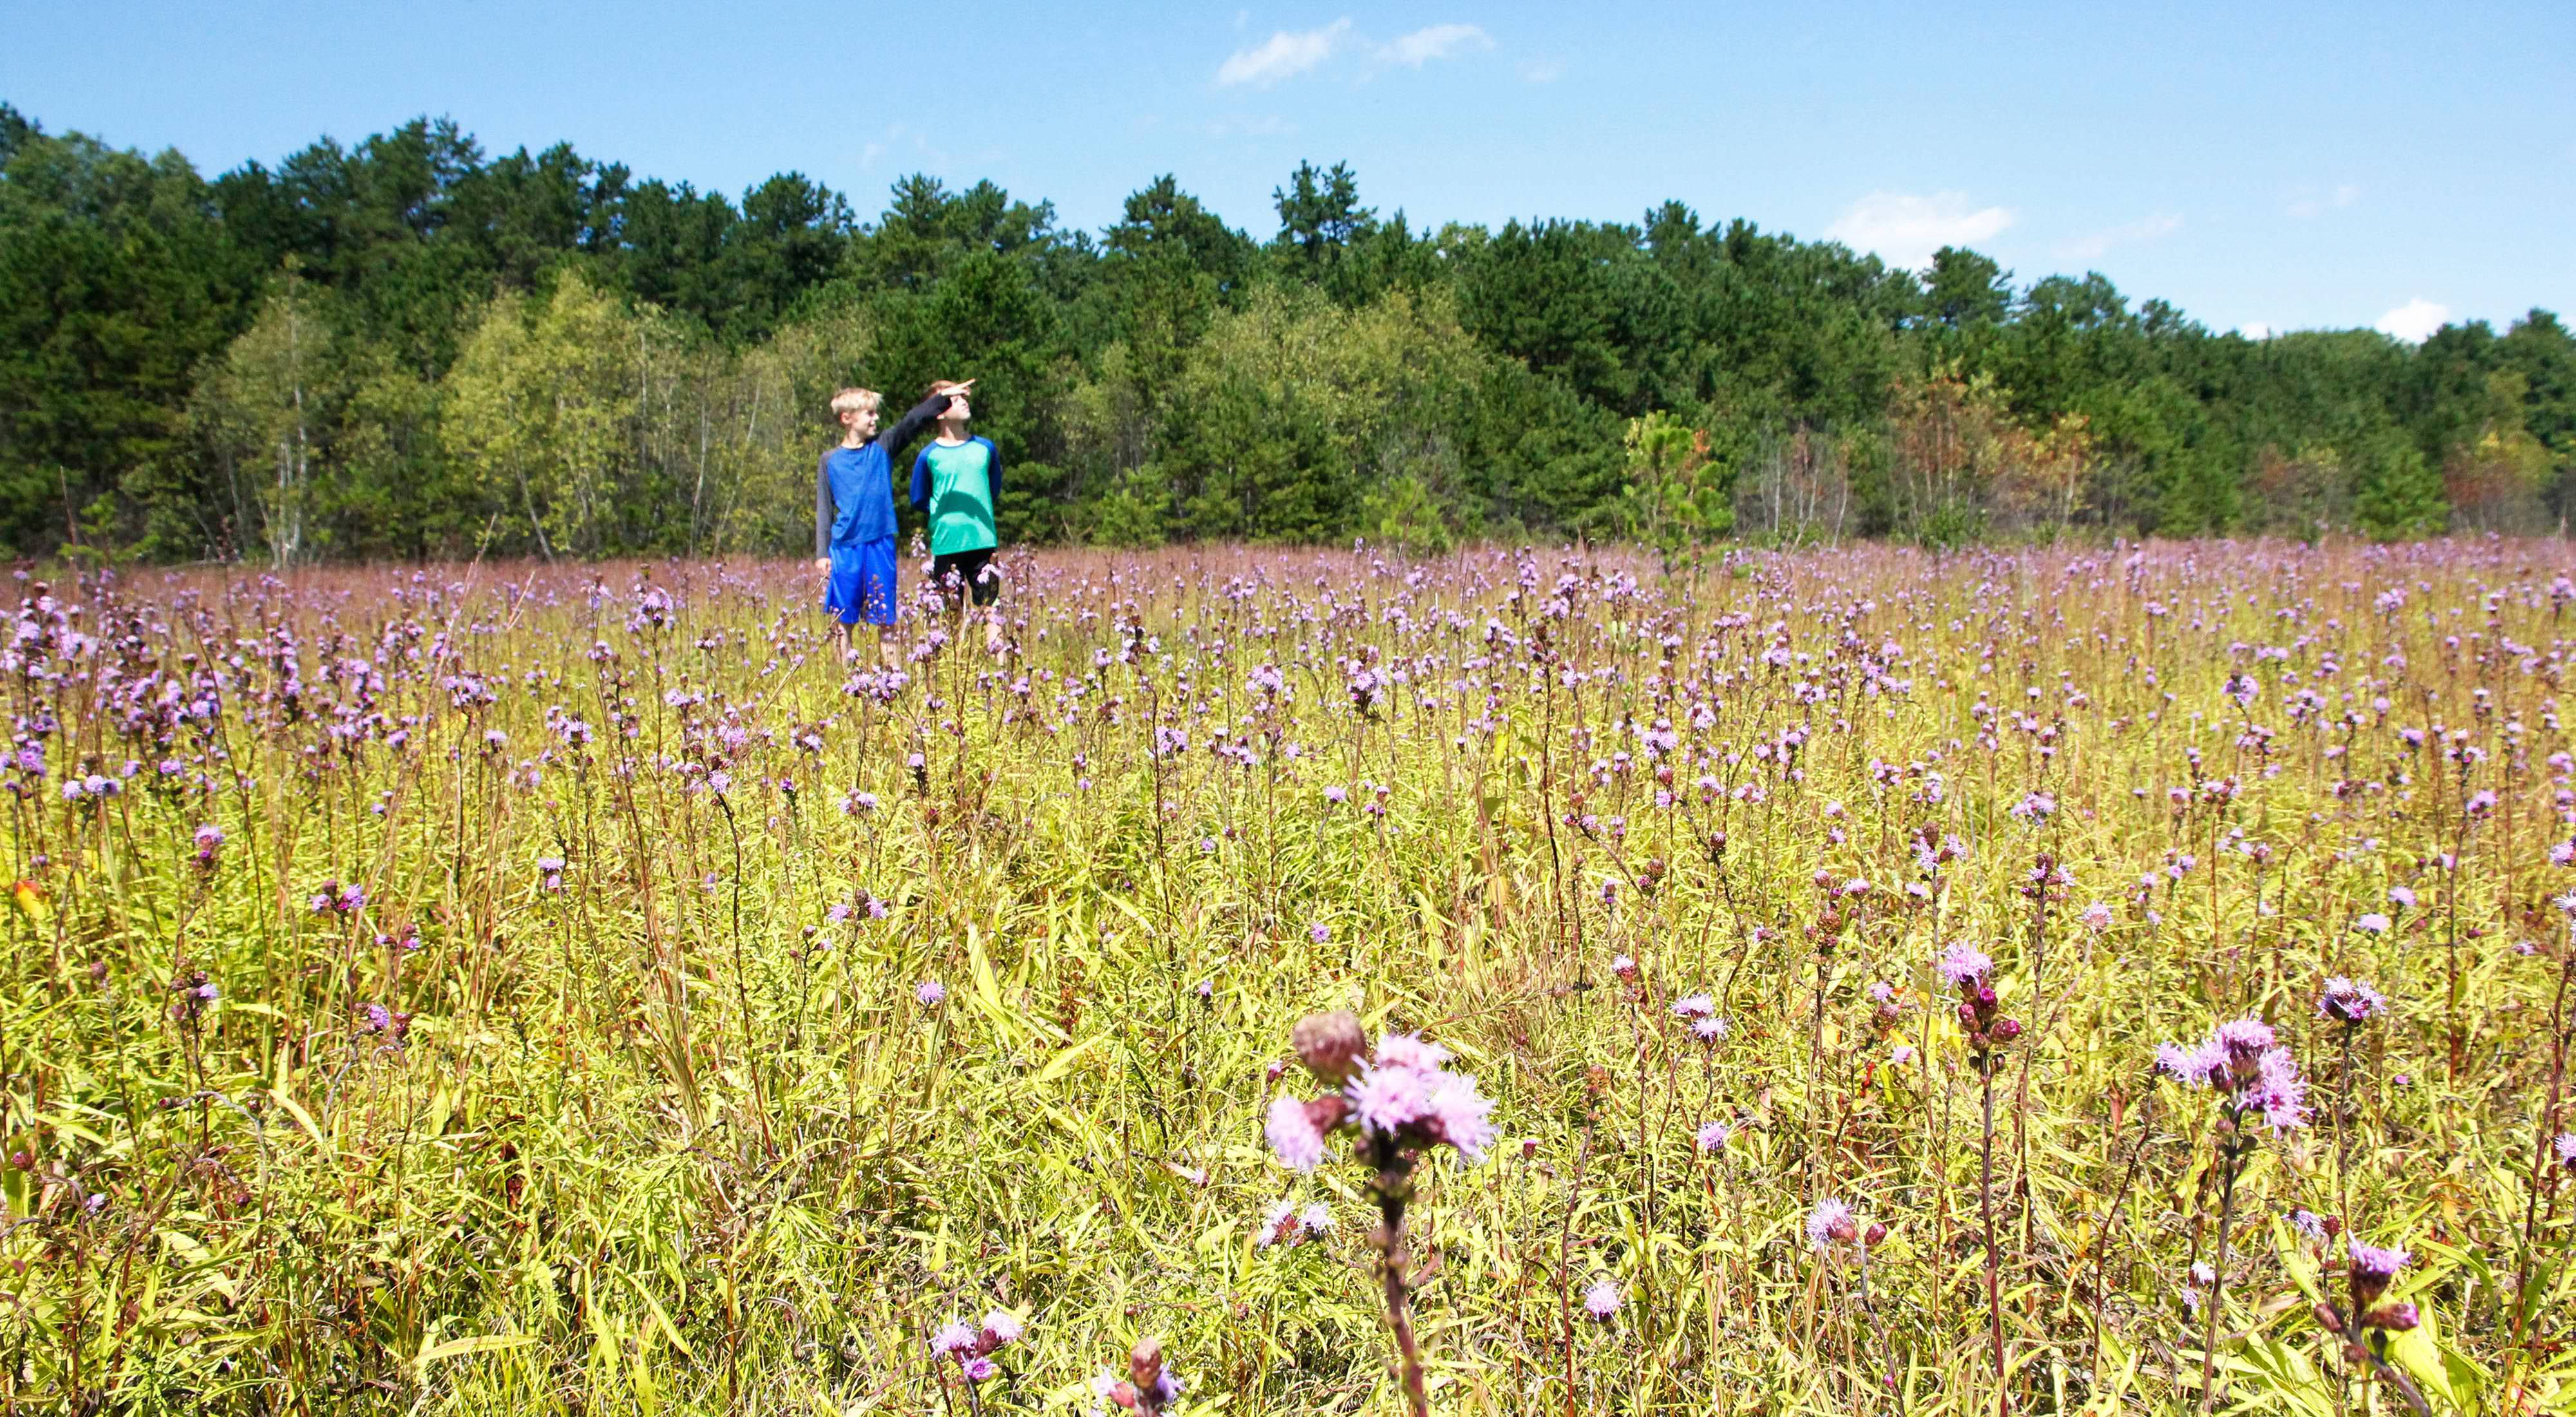 Northern blazing star in bloom at Kennebunk Plains.